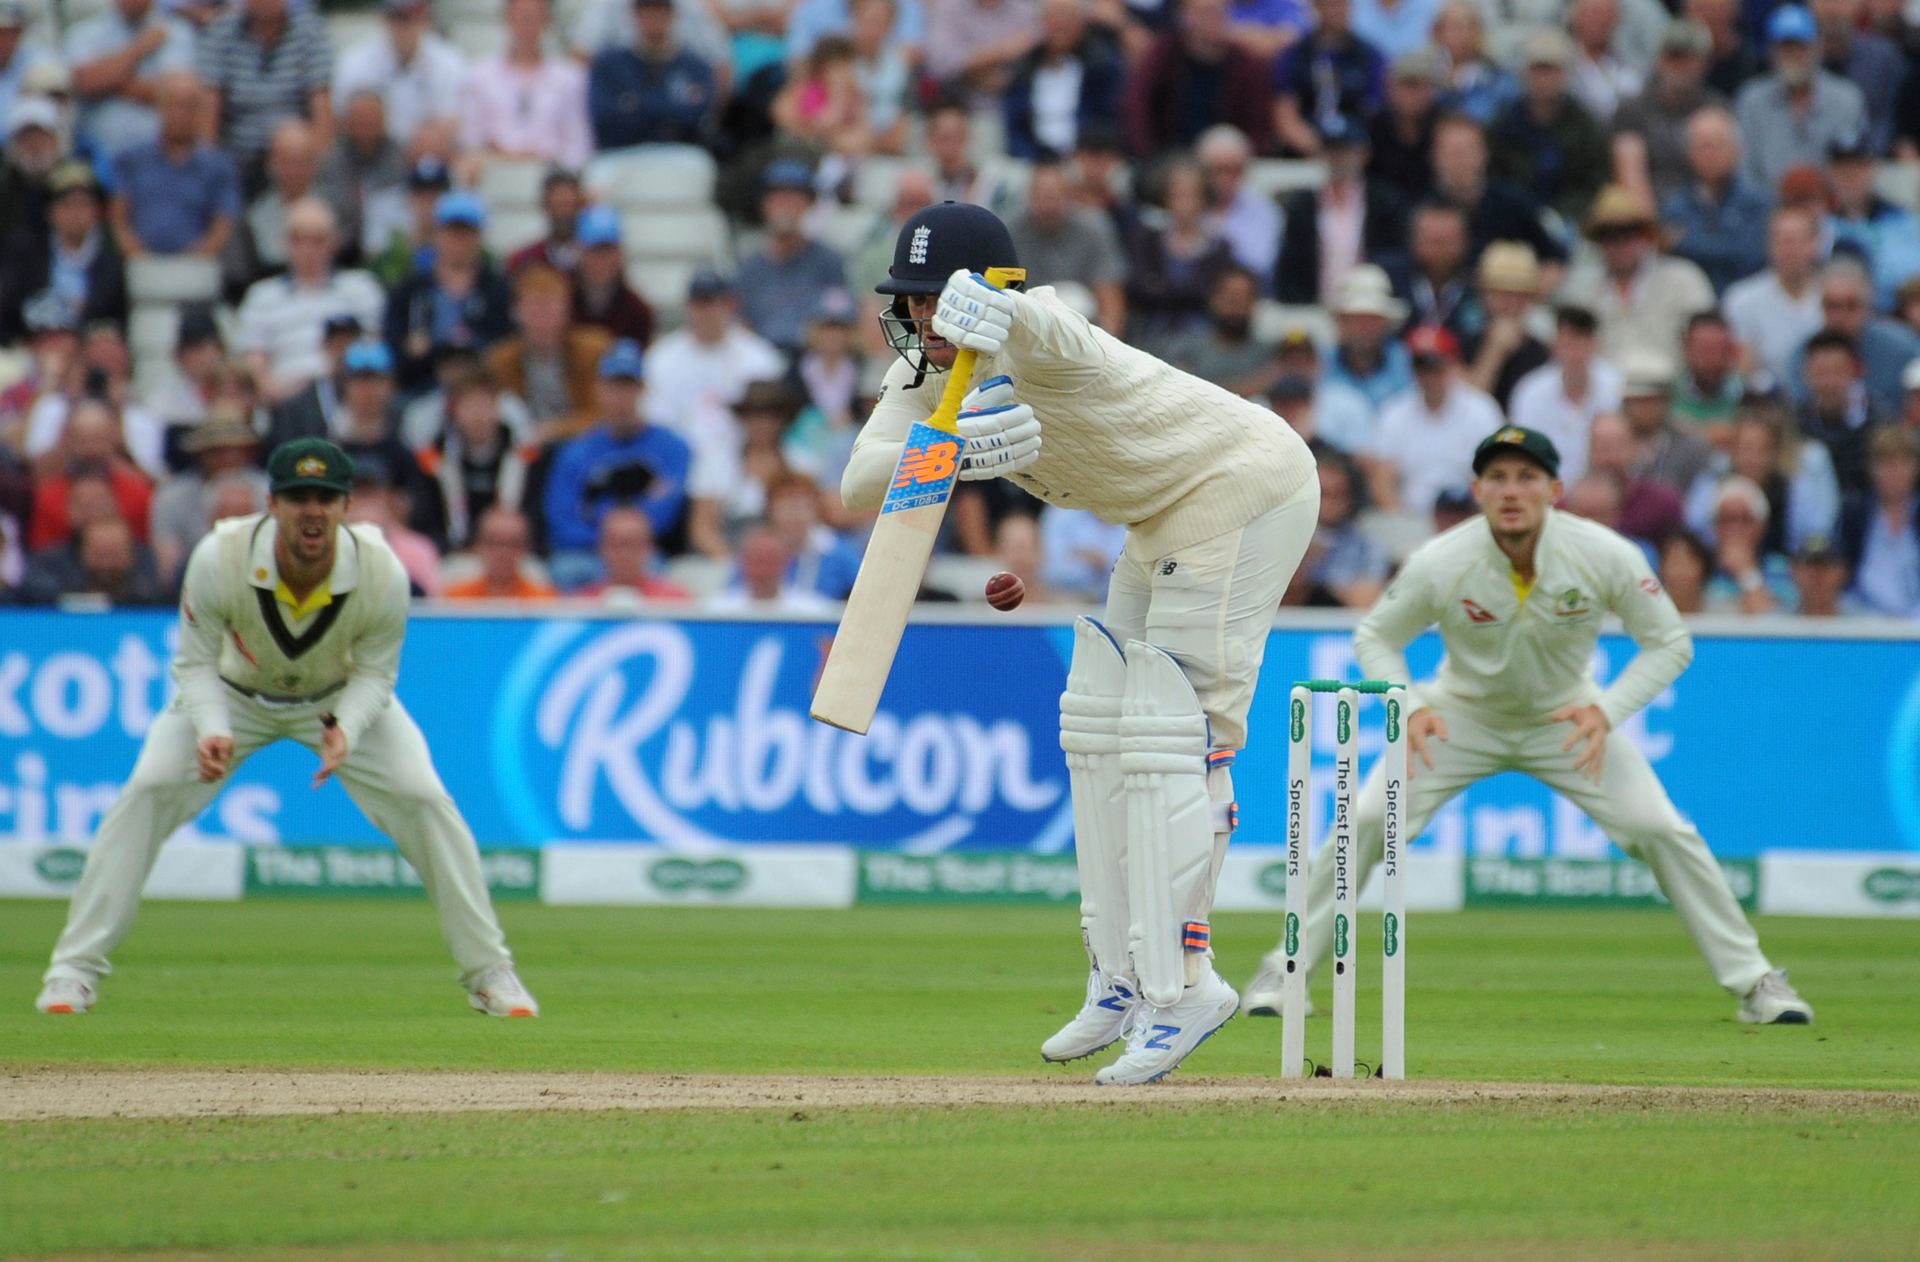 Live cricket updates: The Ashes - Australia v England, first test